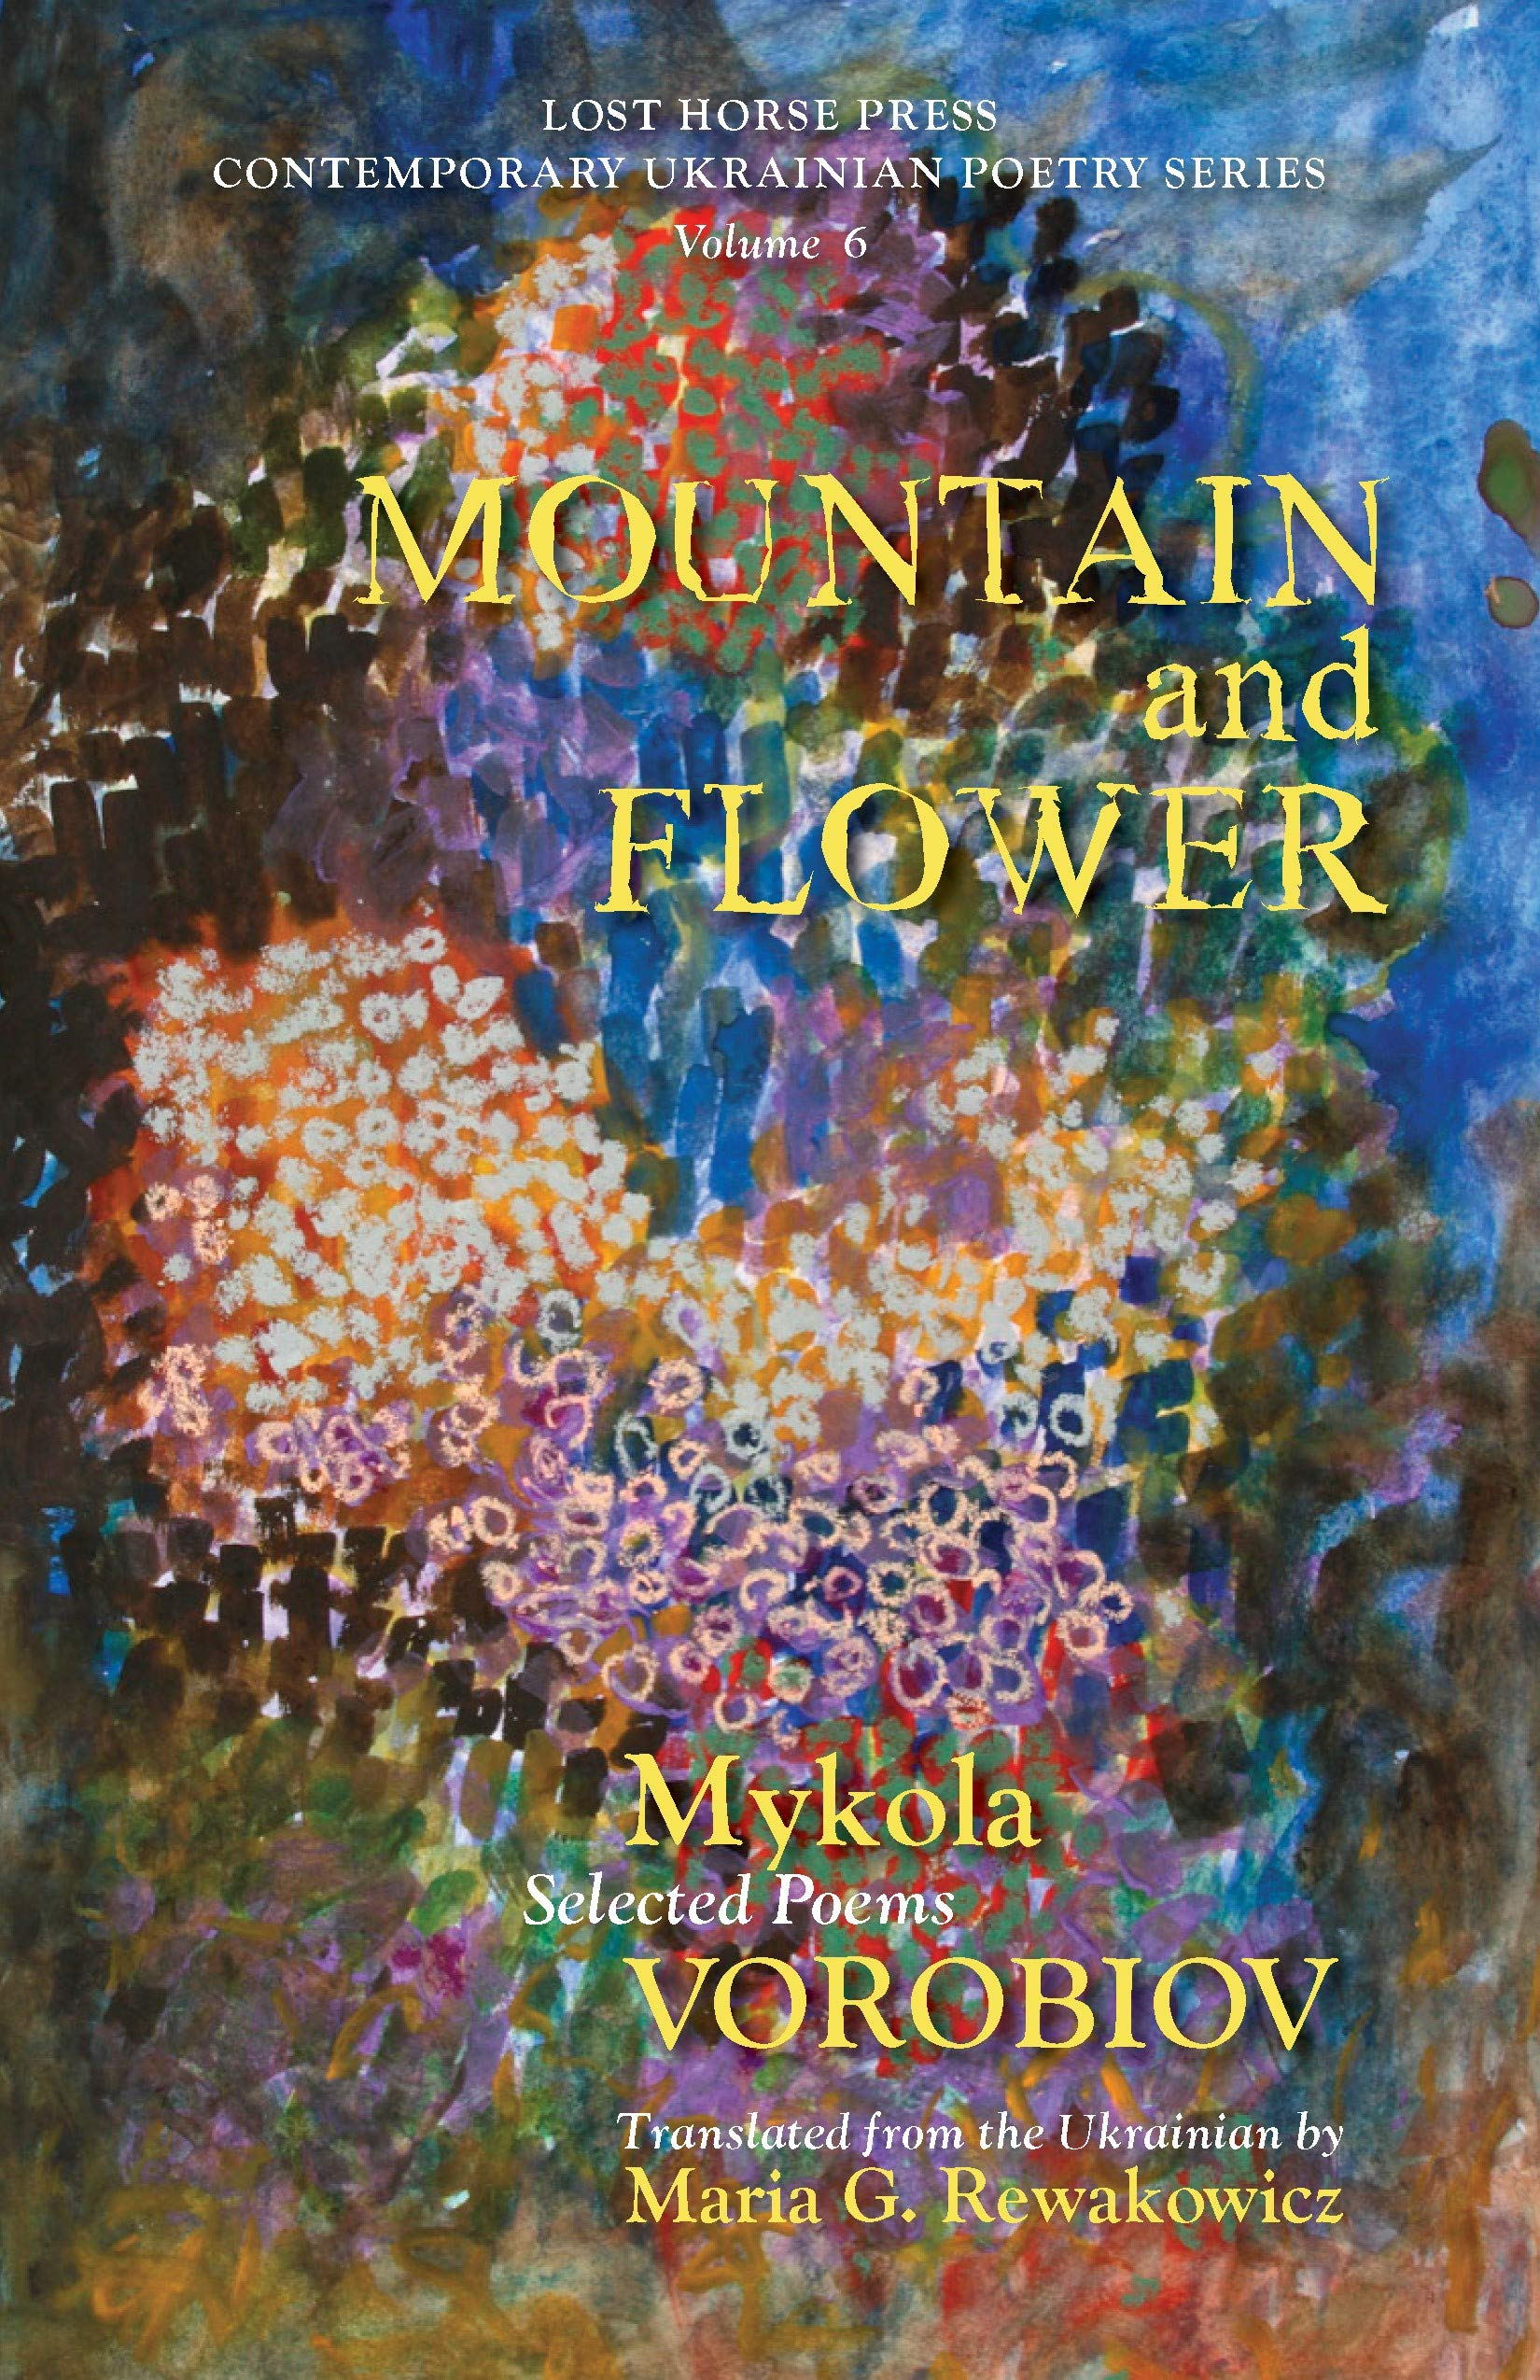 MOUNTAIN & FLOWER: Selected Poems of Mykola Vorobiov  •  Translated from the Ukrainian by Maria G. Rewakowicz